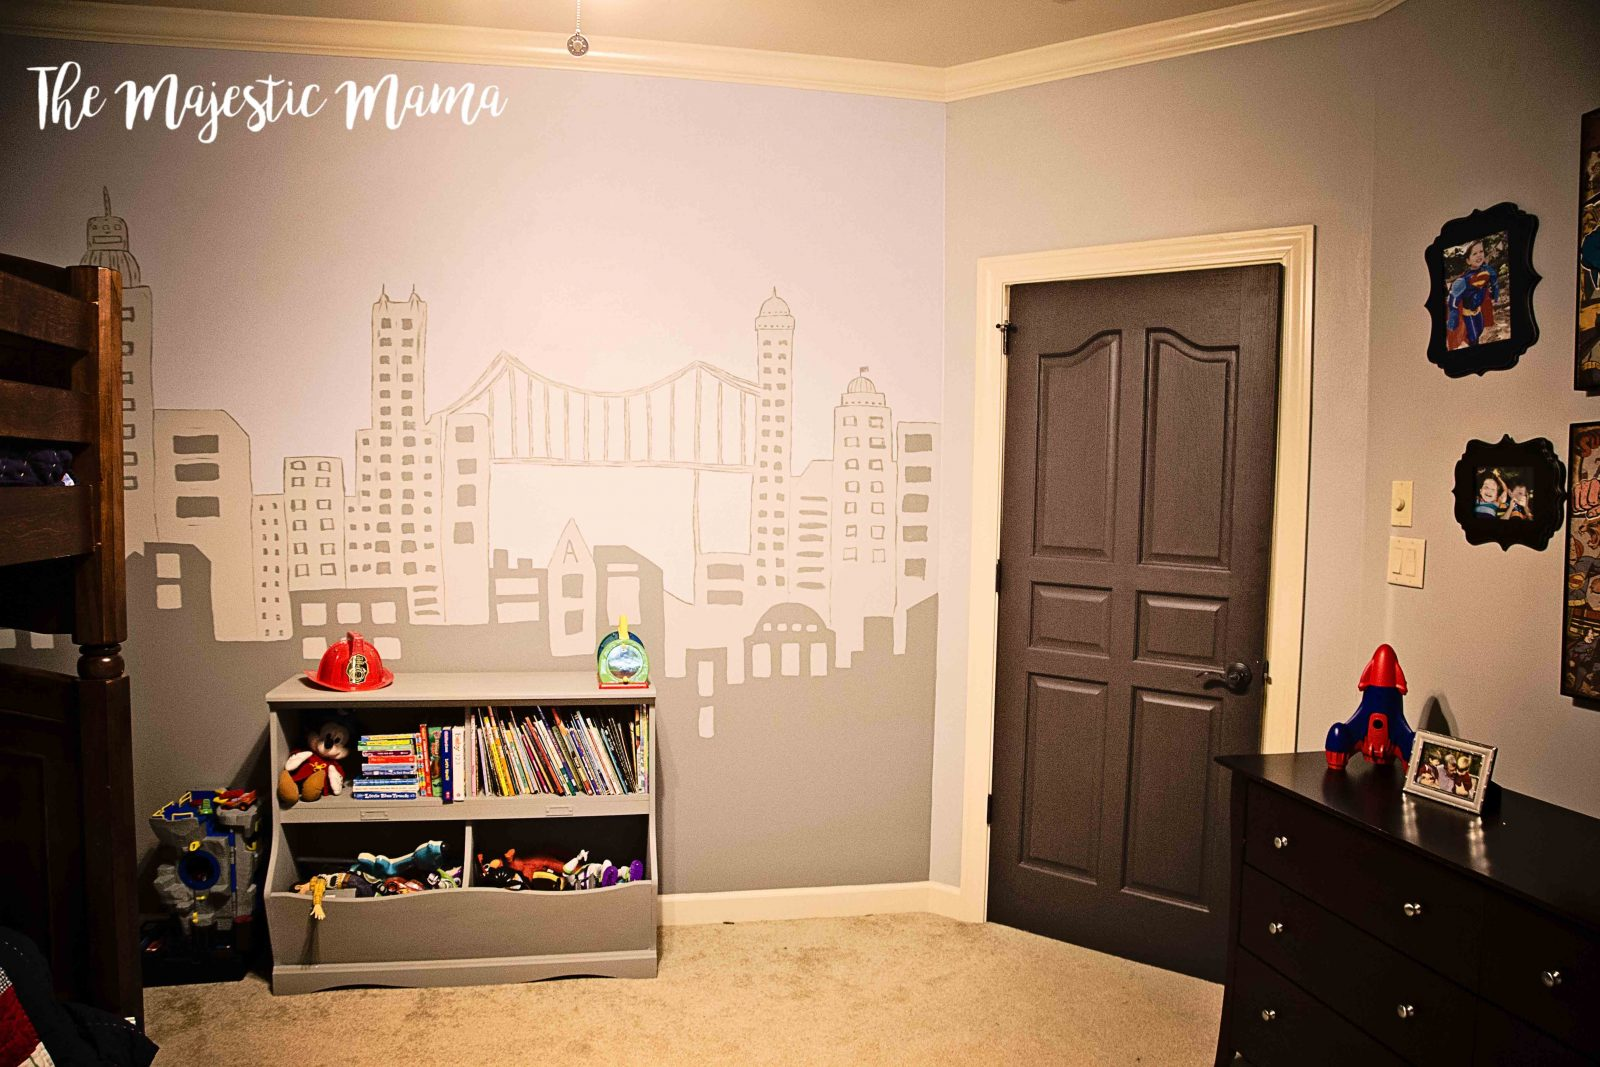 I Hope You Enjoyed This Post And The Photos! This Was Such A Fun Room To Do!